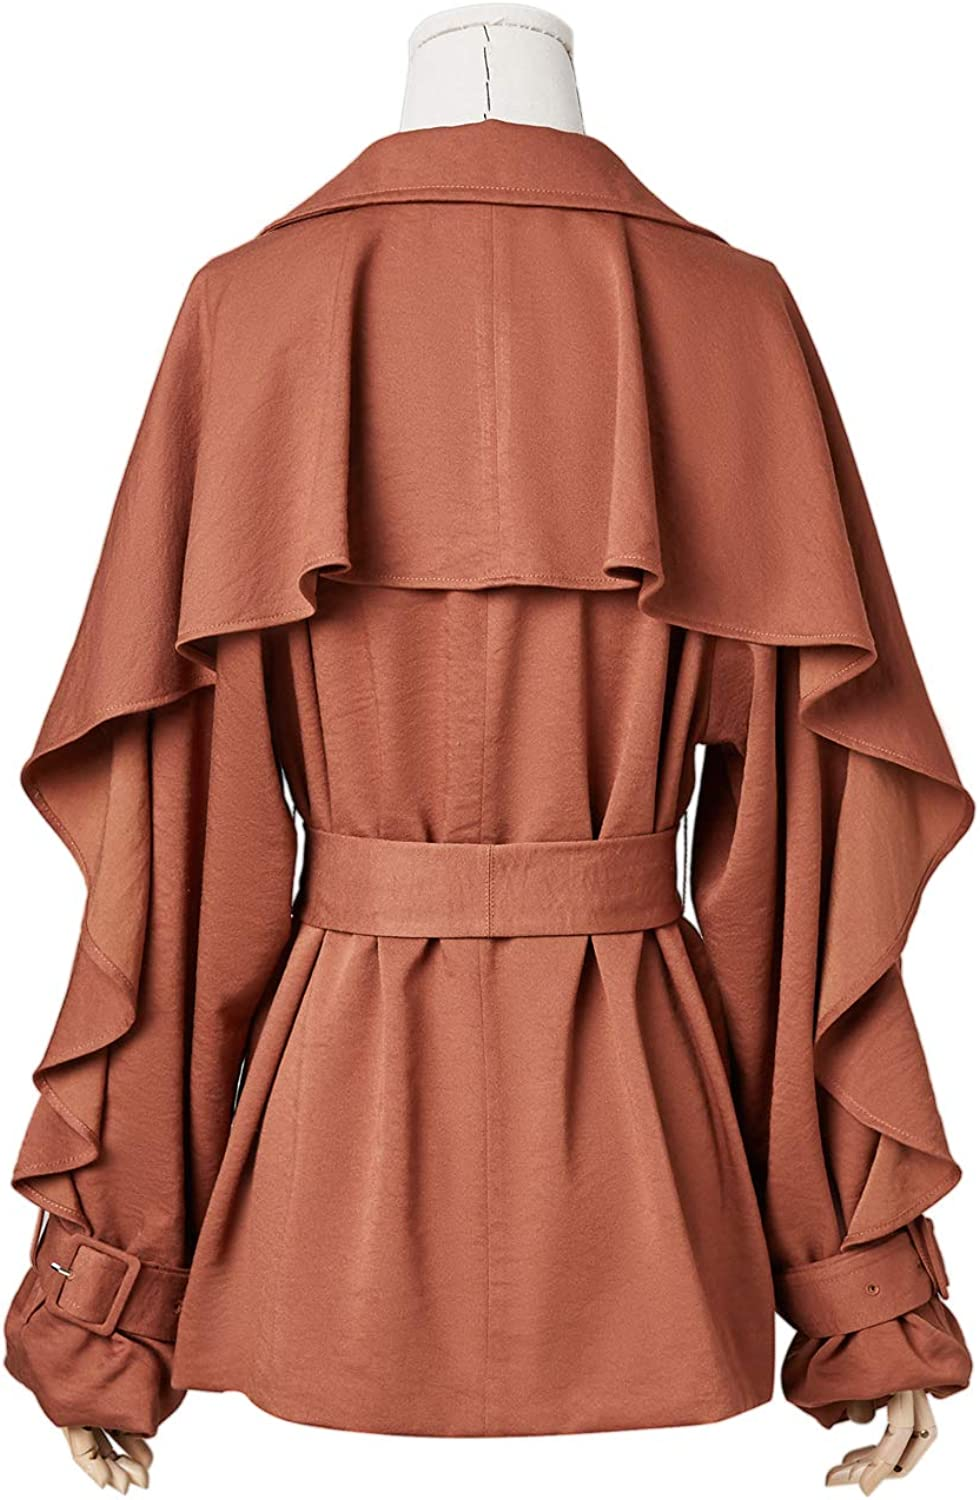 Artka Womens Vintage Lapel Single Breasted Cropped Trench Coat with Belt Coffee